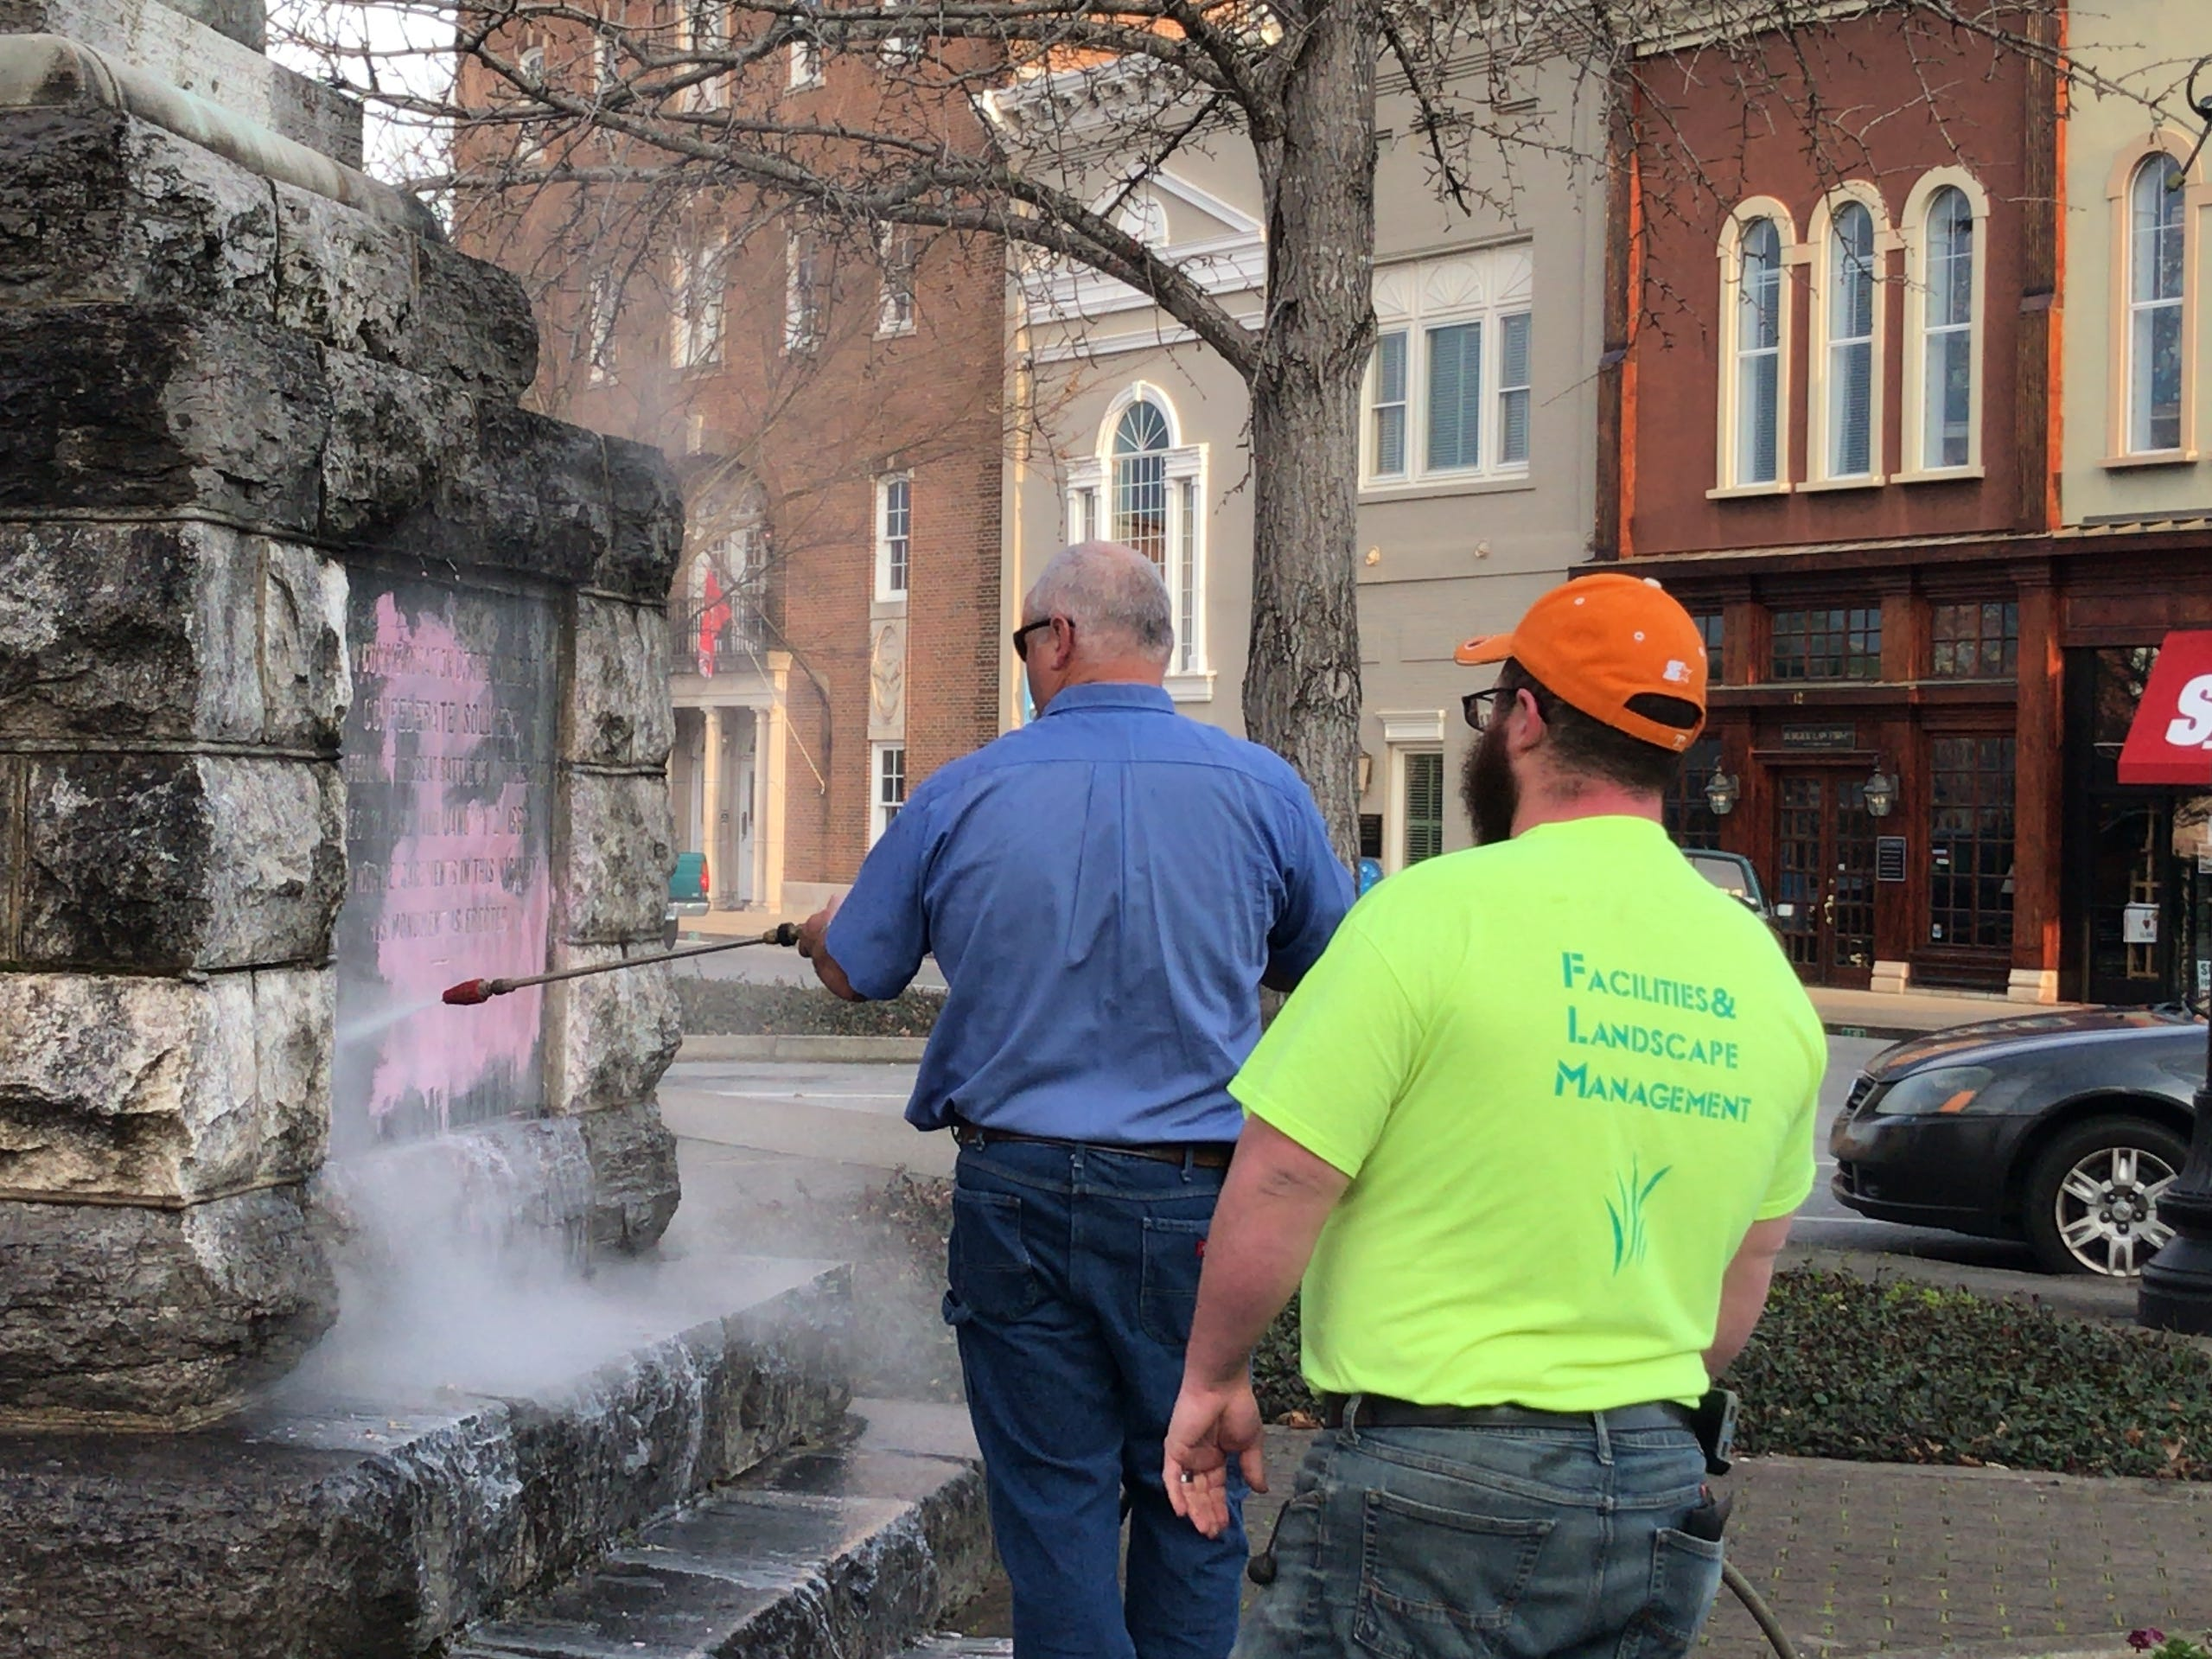 Two men clean the Confederate statue on  the Murfreesboro square that was vandalized overnight on Tuesday, March 12, 2019.